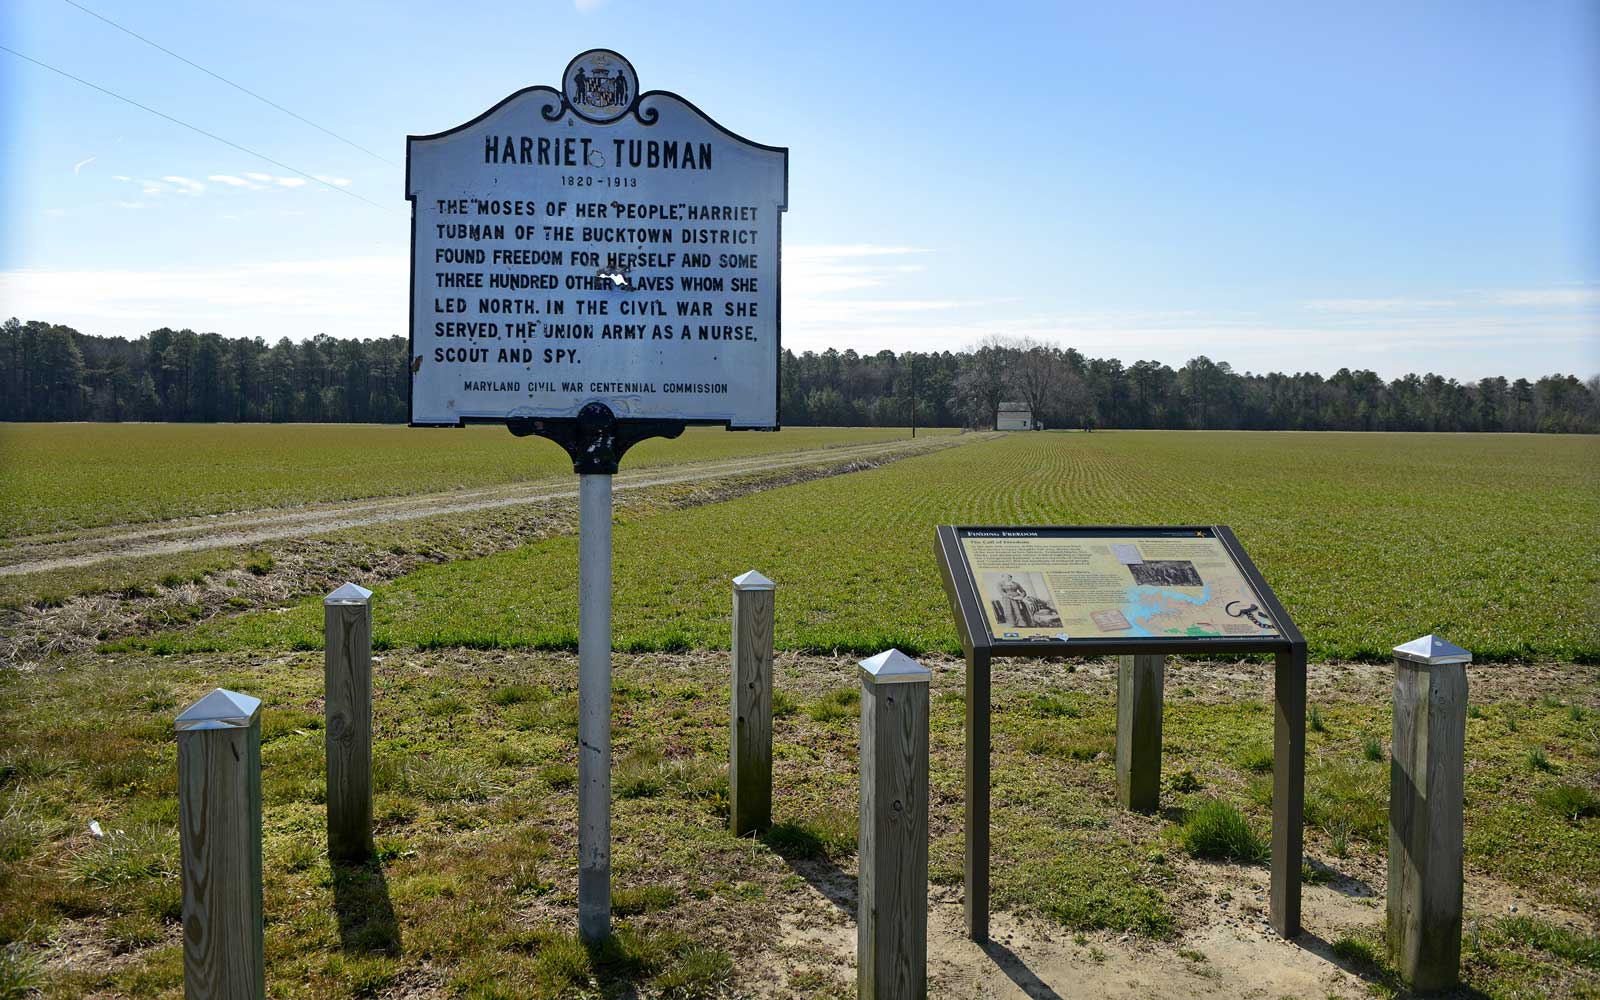 View of the Harriet Tubman Historical Marker at Brodess Farm in Cambridge, MD horizonasia